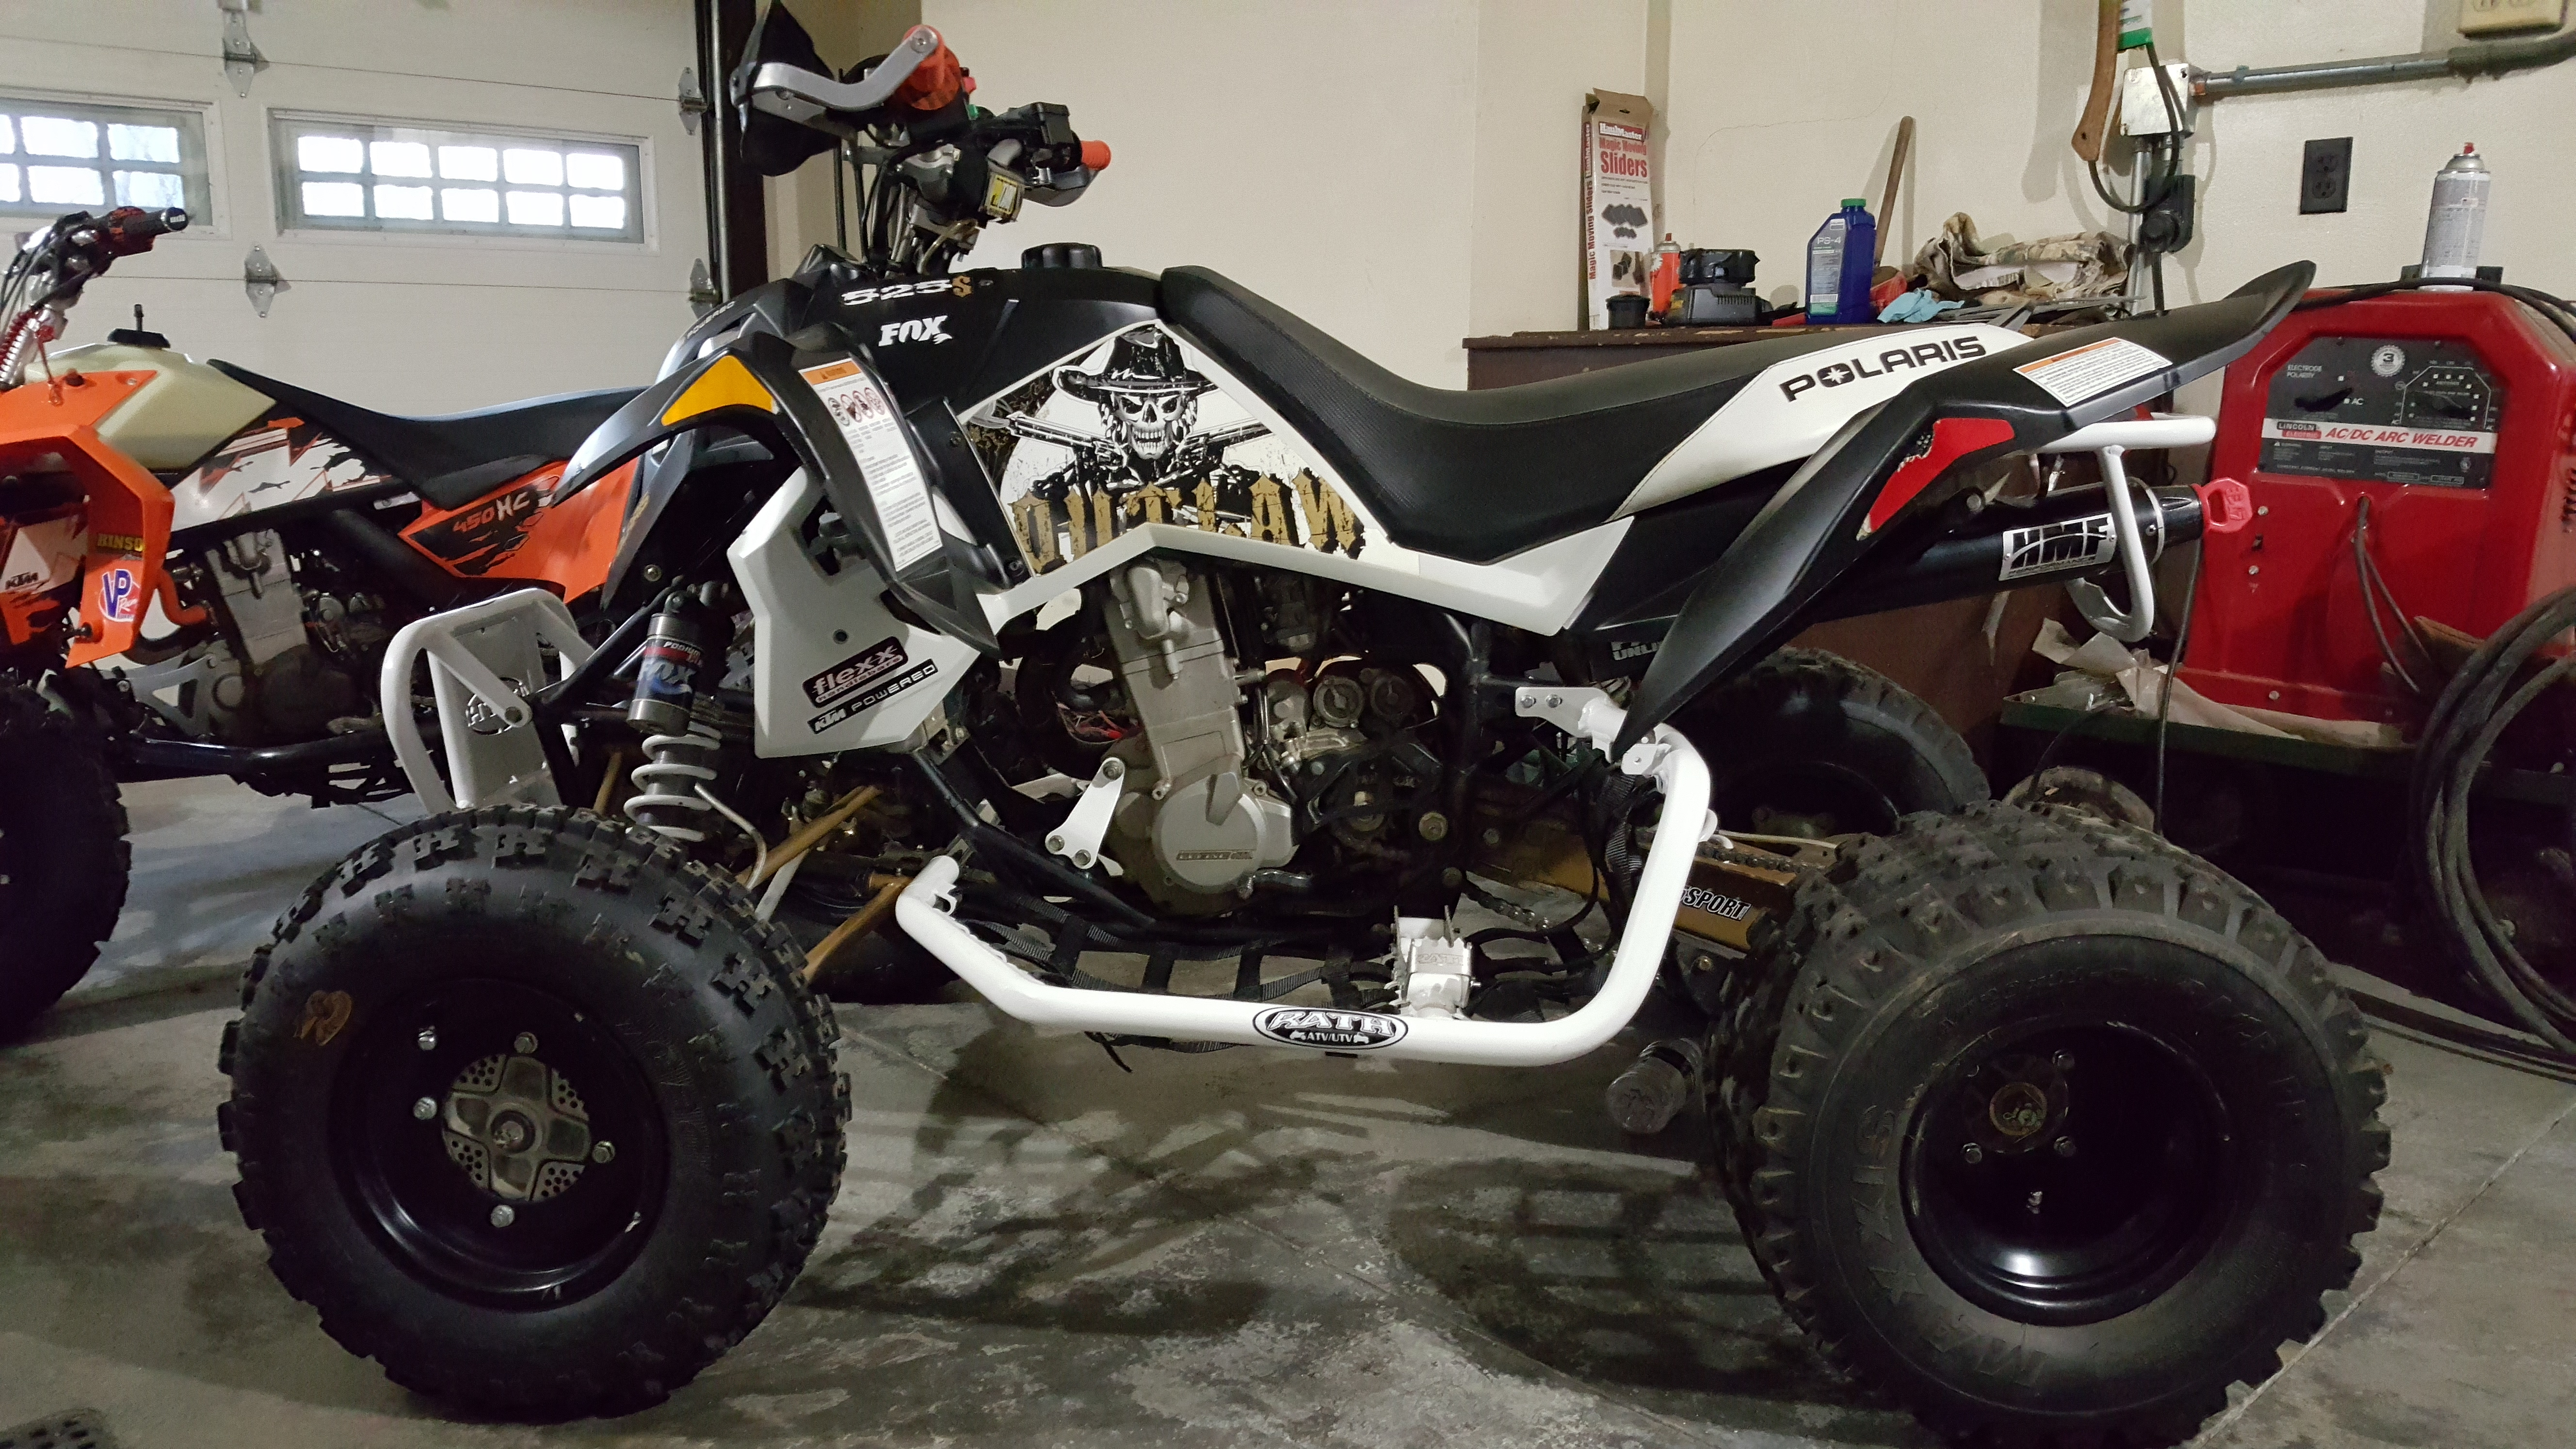 2008 polaris outlaw 525 limited edition